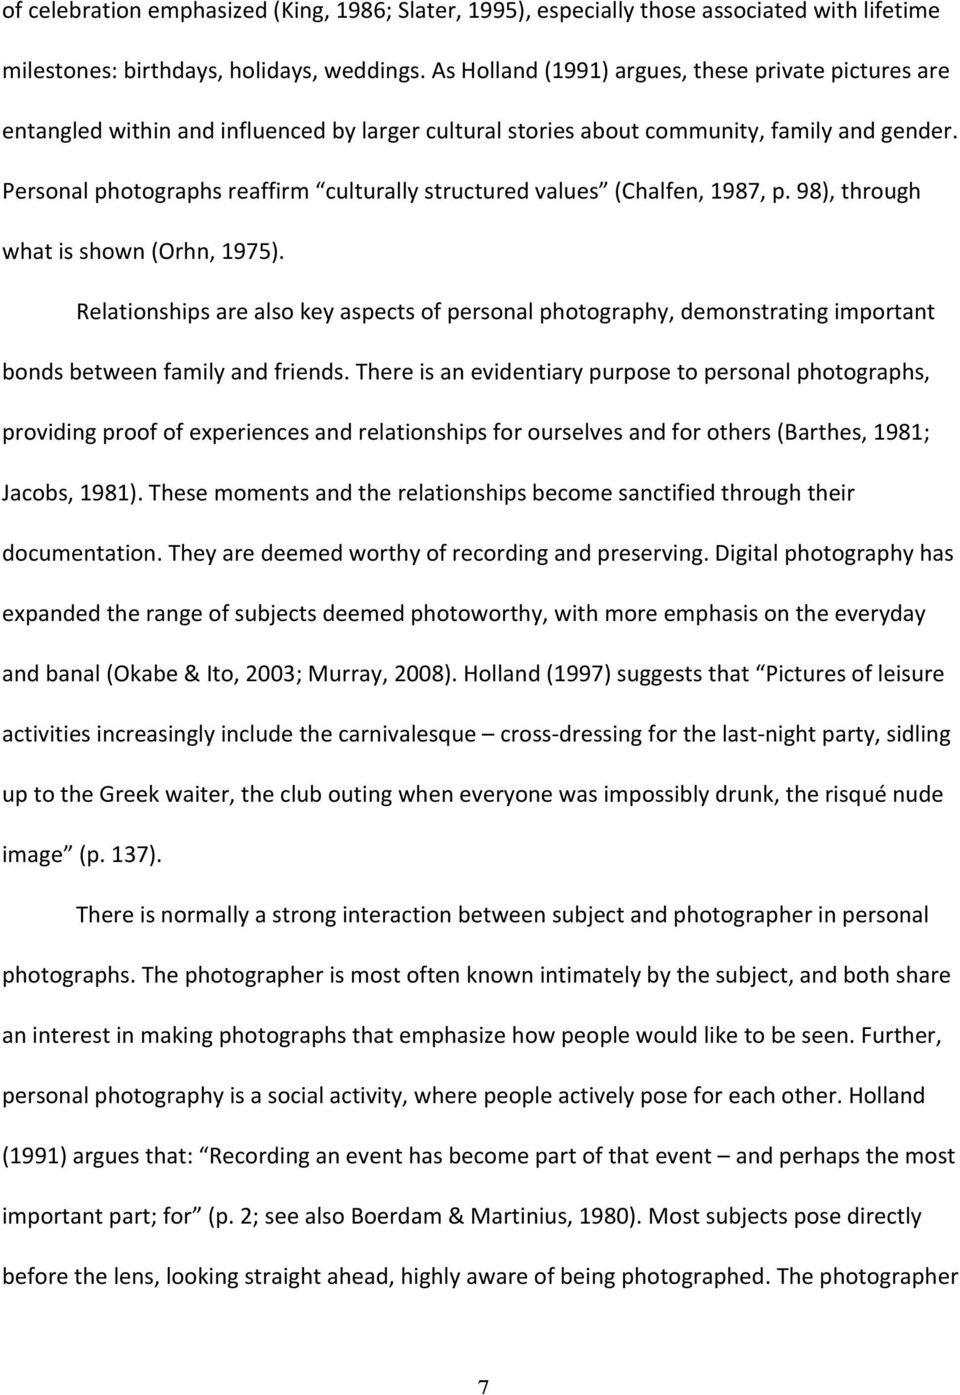 Personal photographs reaffirm culturally structured values (Chalfen, 1987, p. 98), through what is shown (Orhn, 1975).